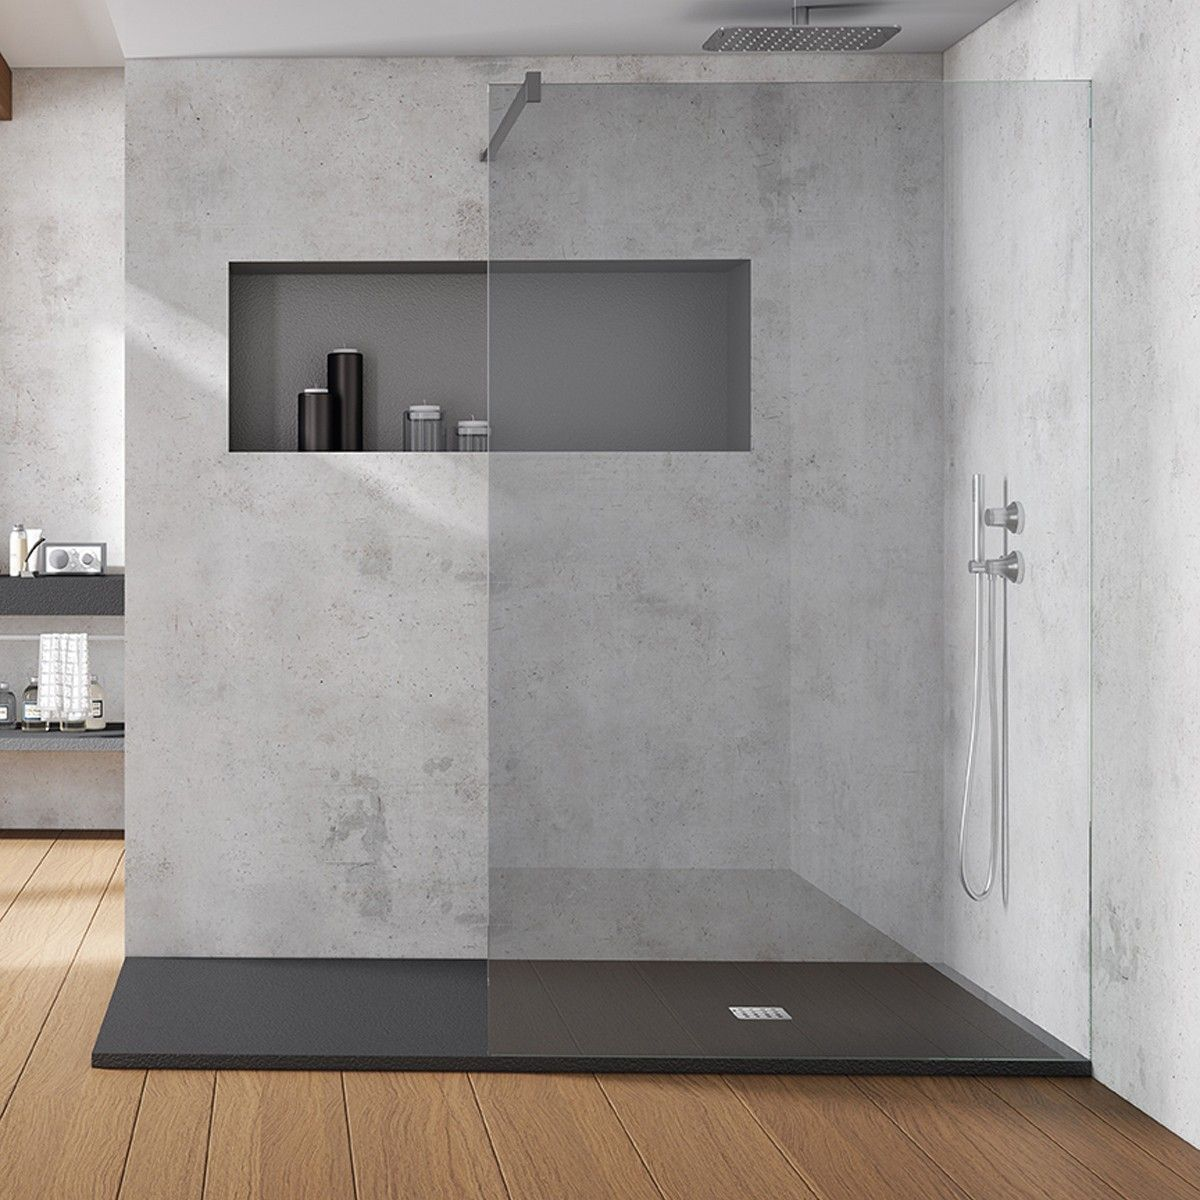 Acquabella base slate cemento xmm shower tray slate effect